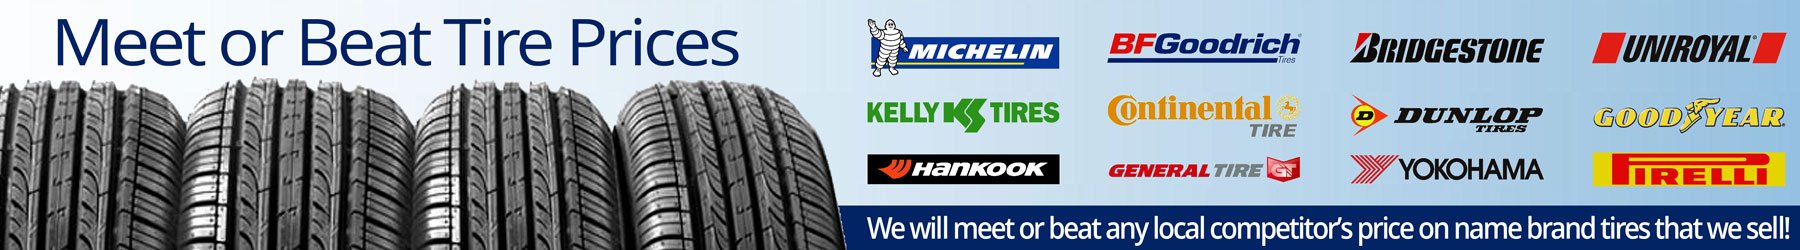 meet-or-beat-tire-prices-banner